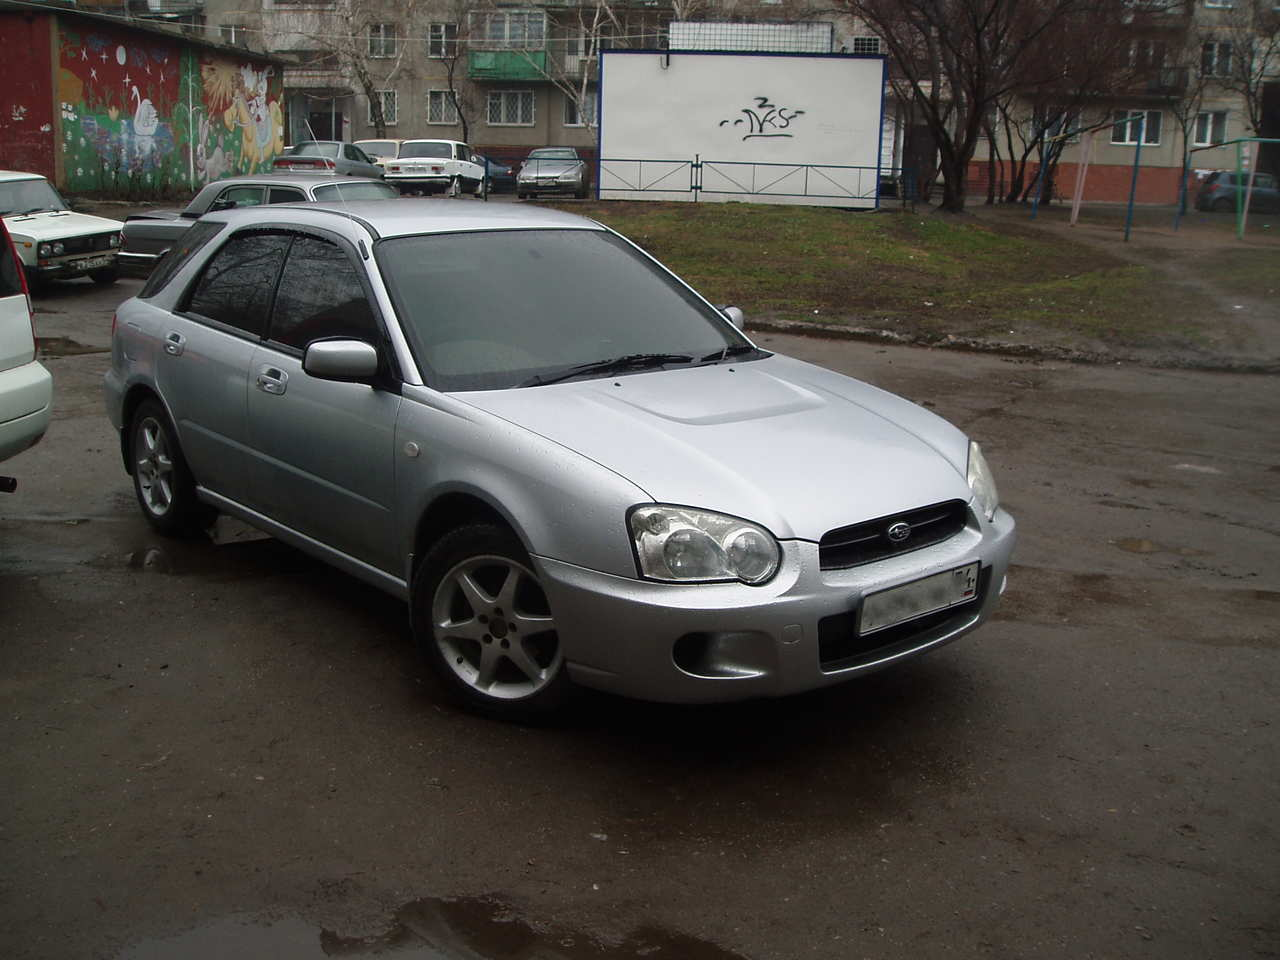 used 2002 subaru impreza photos 1500cc gasoline ff automatic for sale. Black Bedroom Furniture Sets. Home Design Ideas